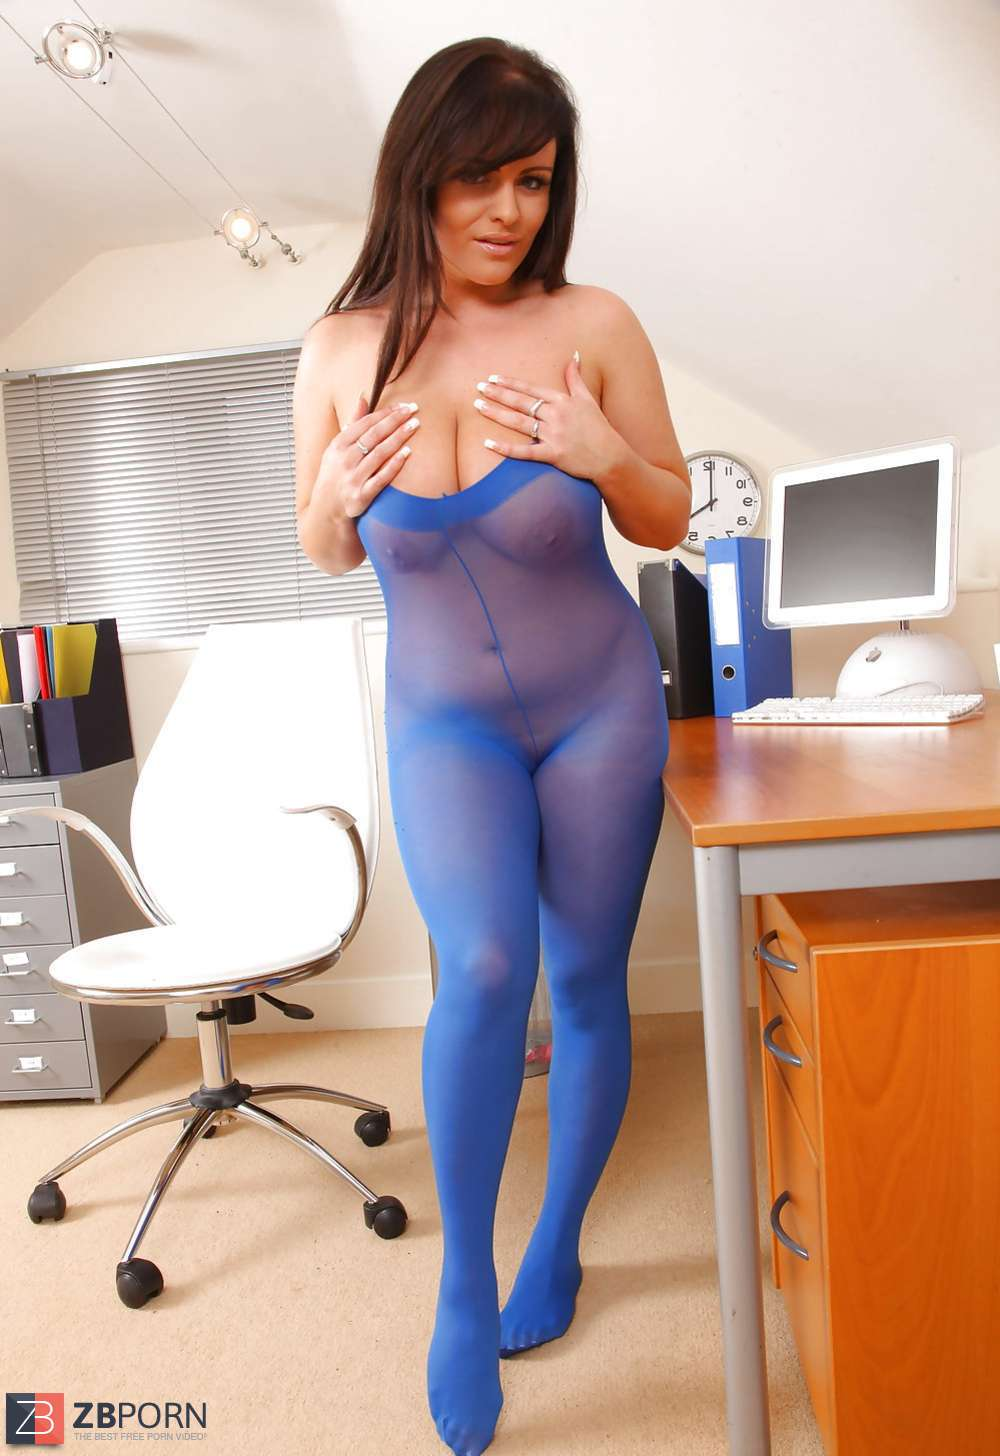 Free pantyhose porn pics Free Preview Pantyhose Fetish Porn Pics Moveis Comments 1